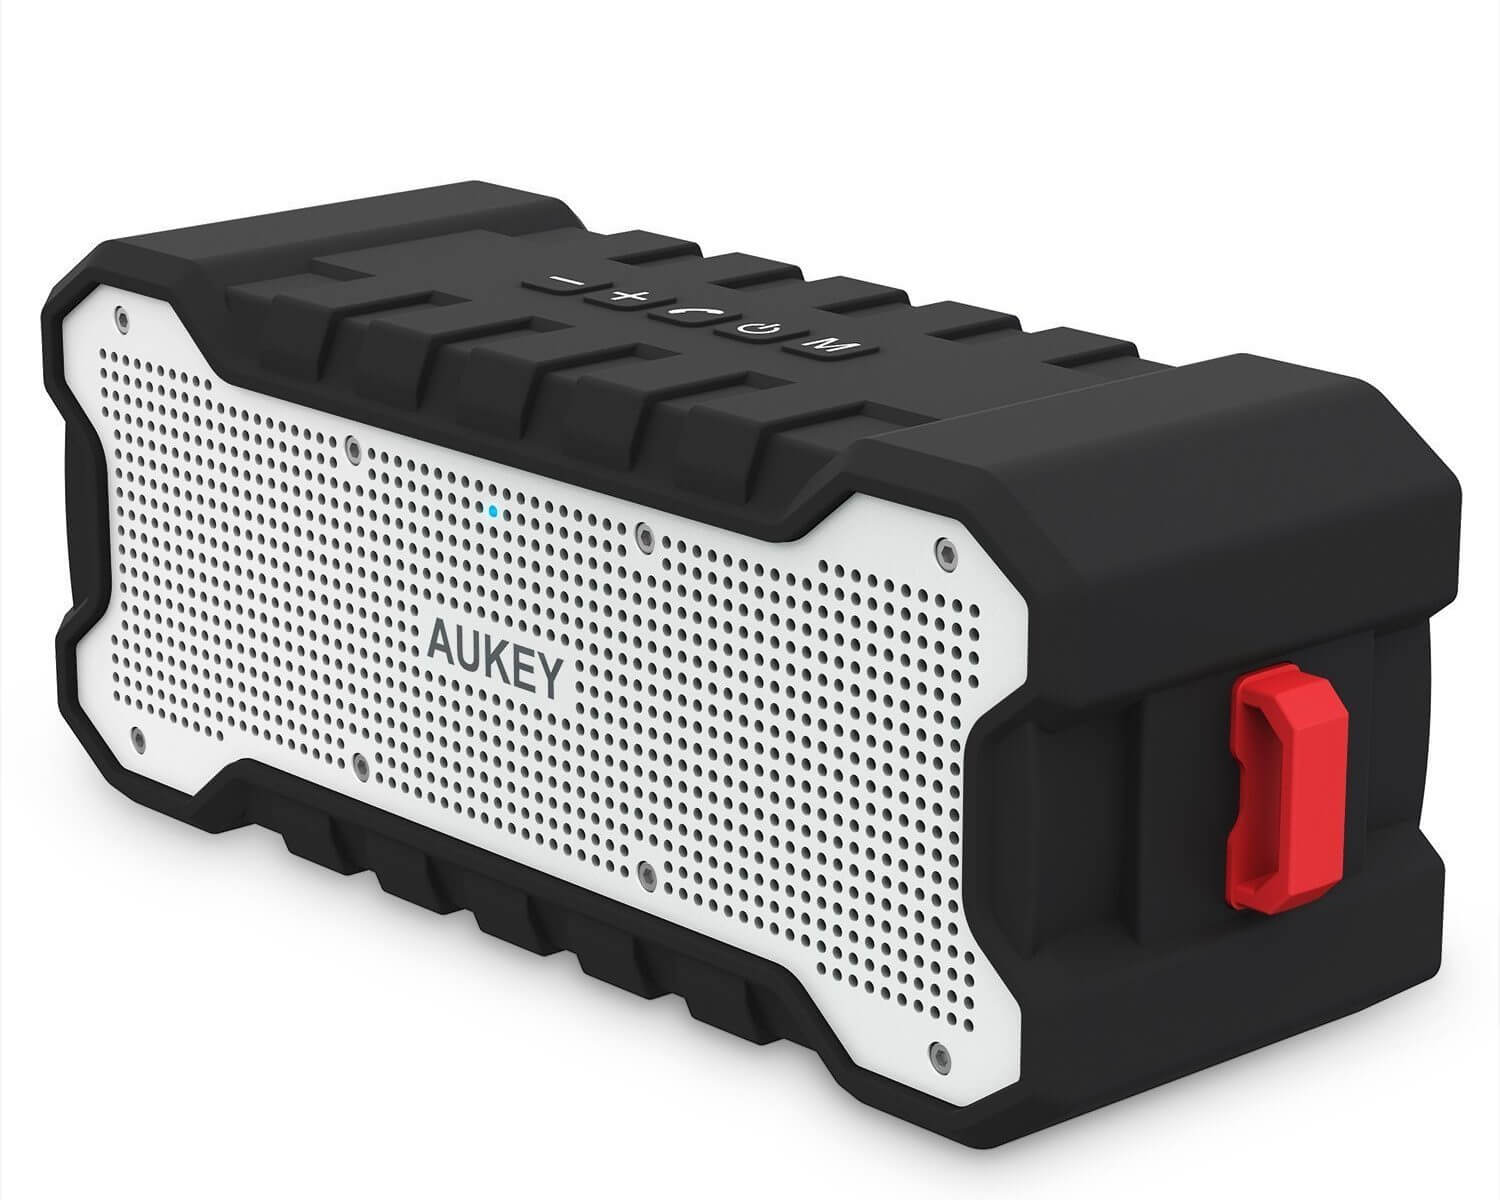 AUKEY SoundTank Bluetooth Speaker